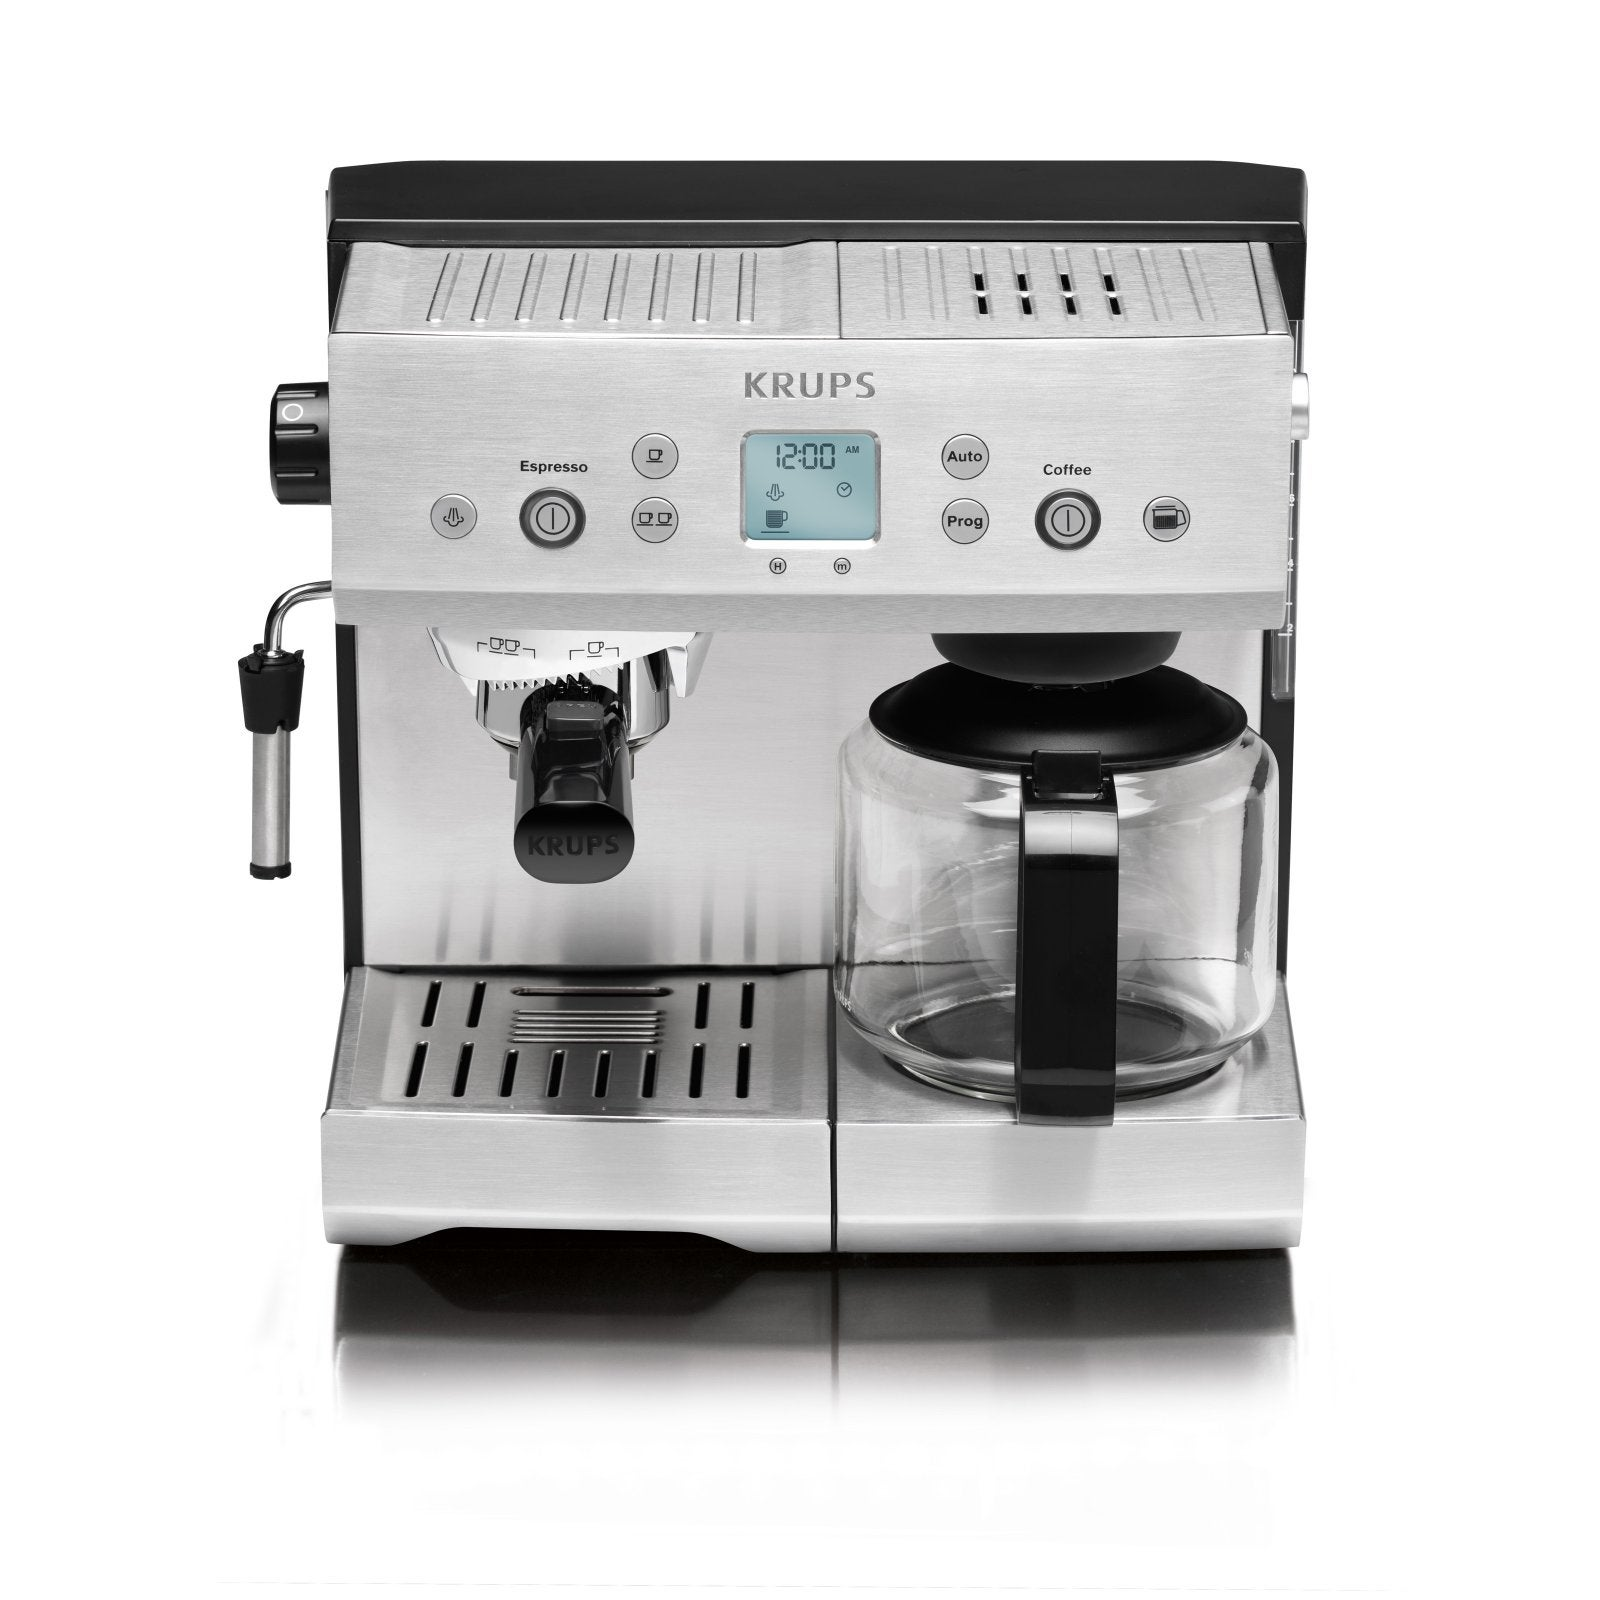 Krups XP2280 Programmable Coffee and Espresso Machine L14057330 Coffee Maker Espresso Combo Reviews